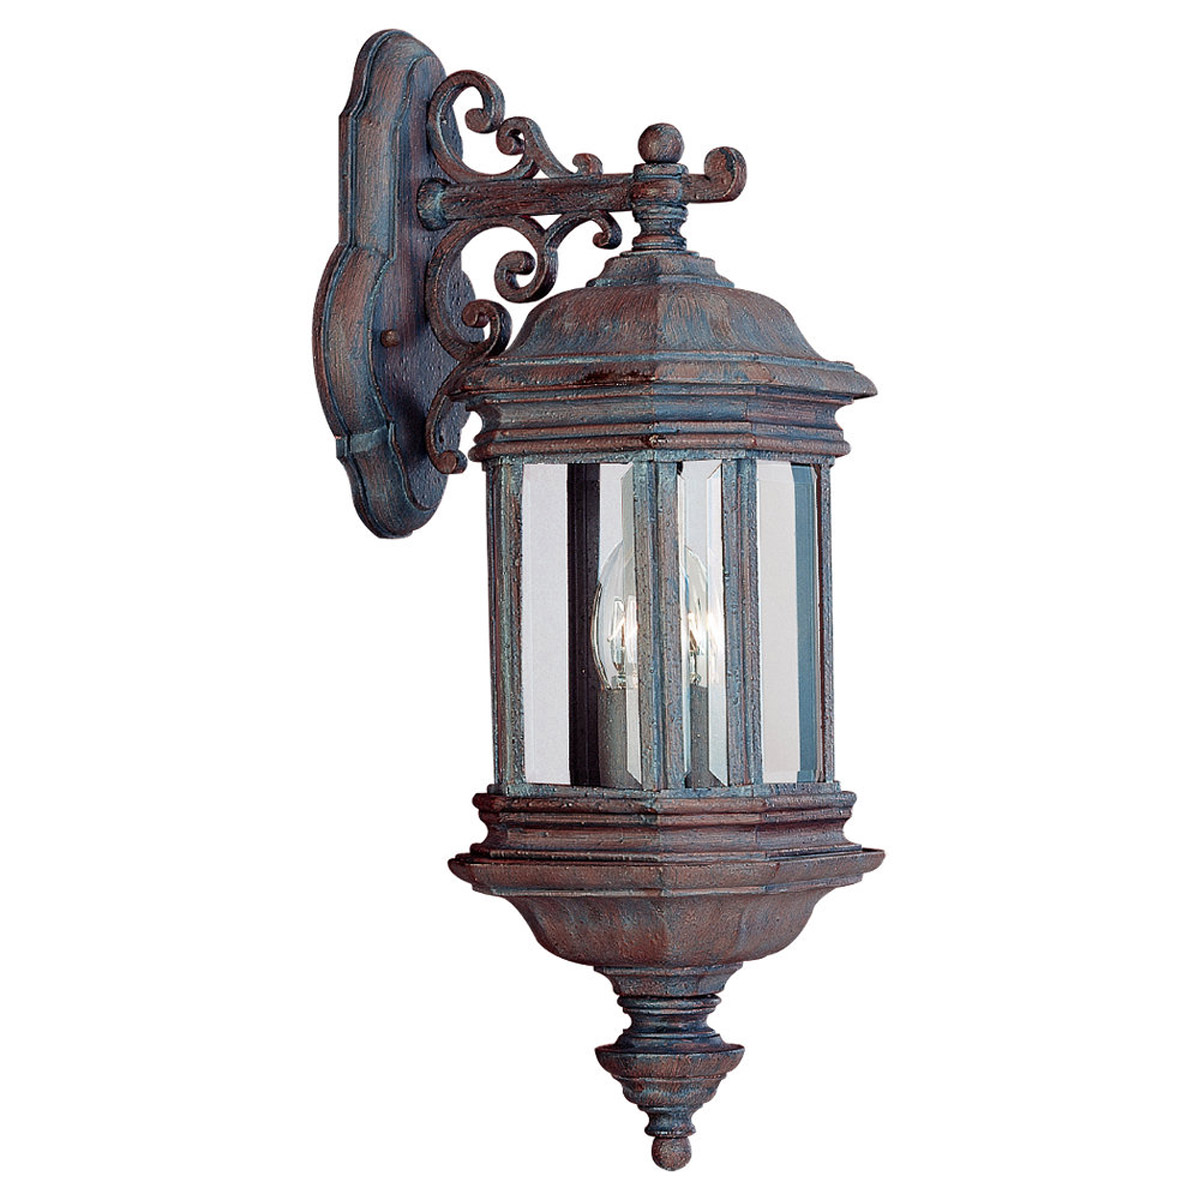 Sea Gull Lighting Hill Gate 2 Light Outdoor Wall Lantern in Textured Rust Patina 8840-08 photo